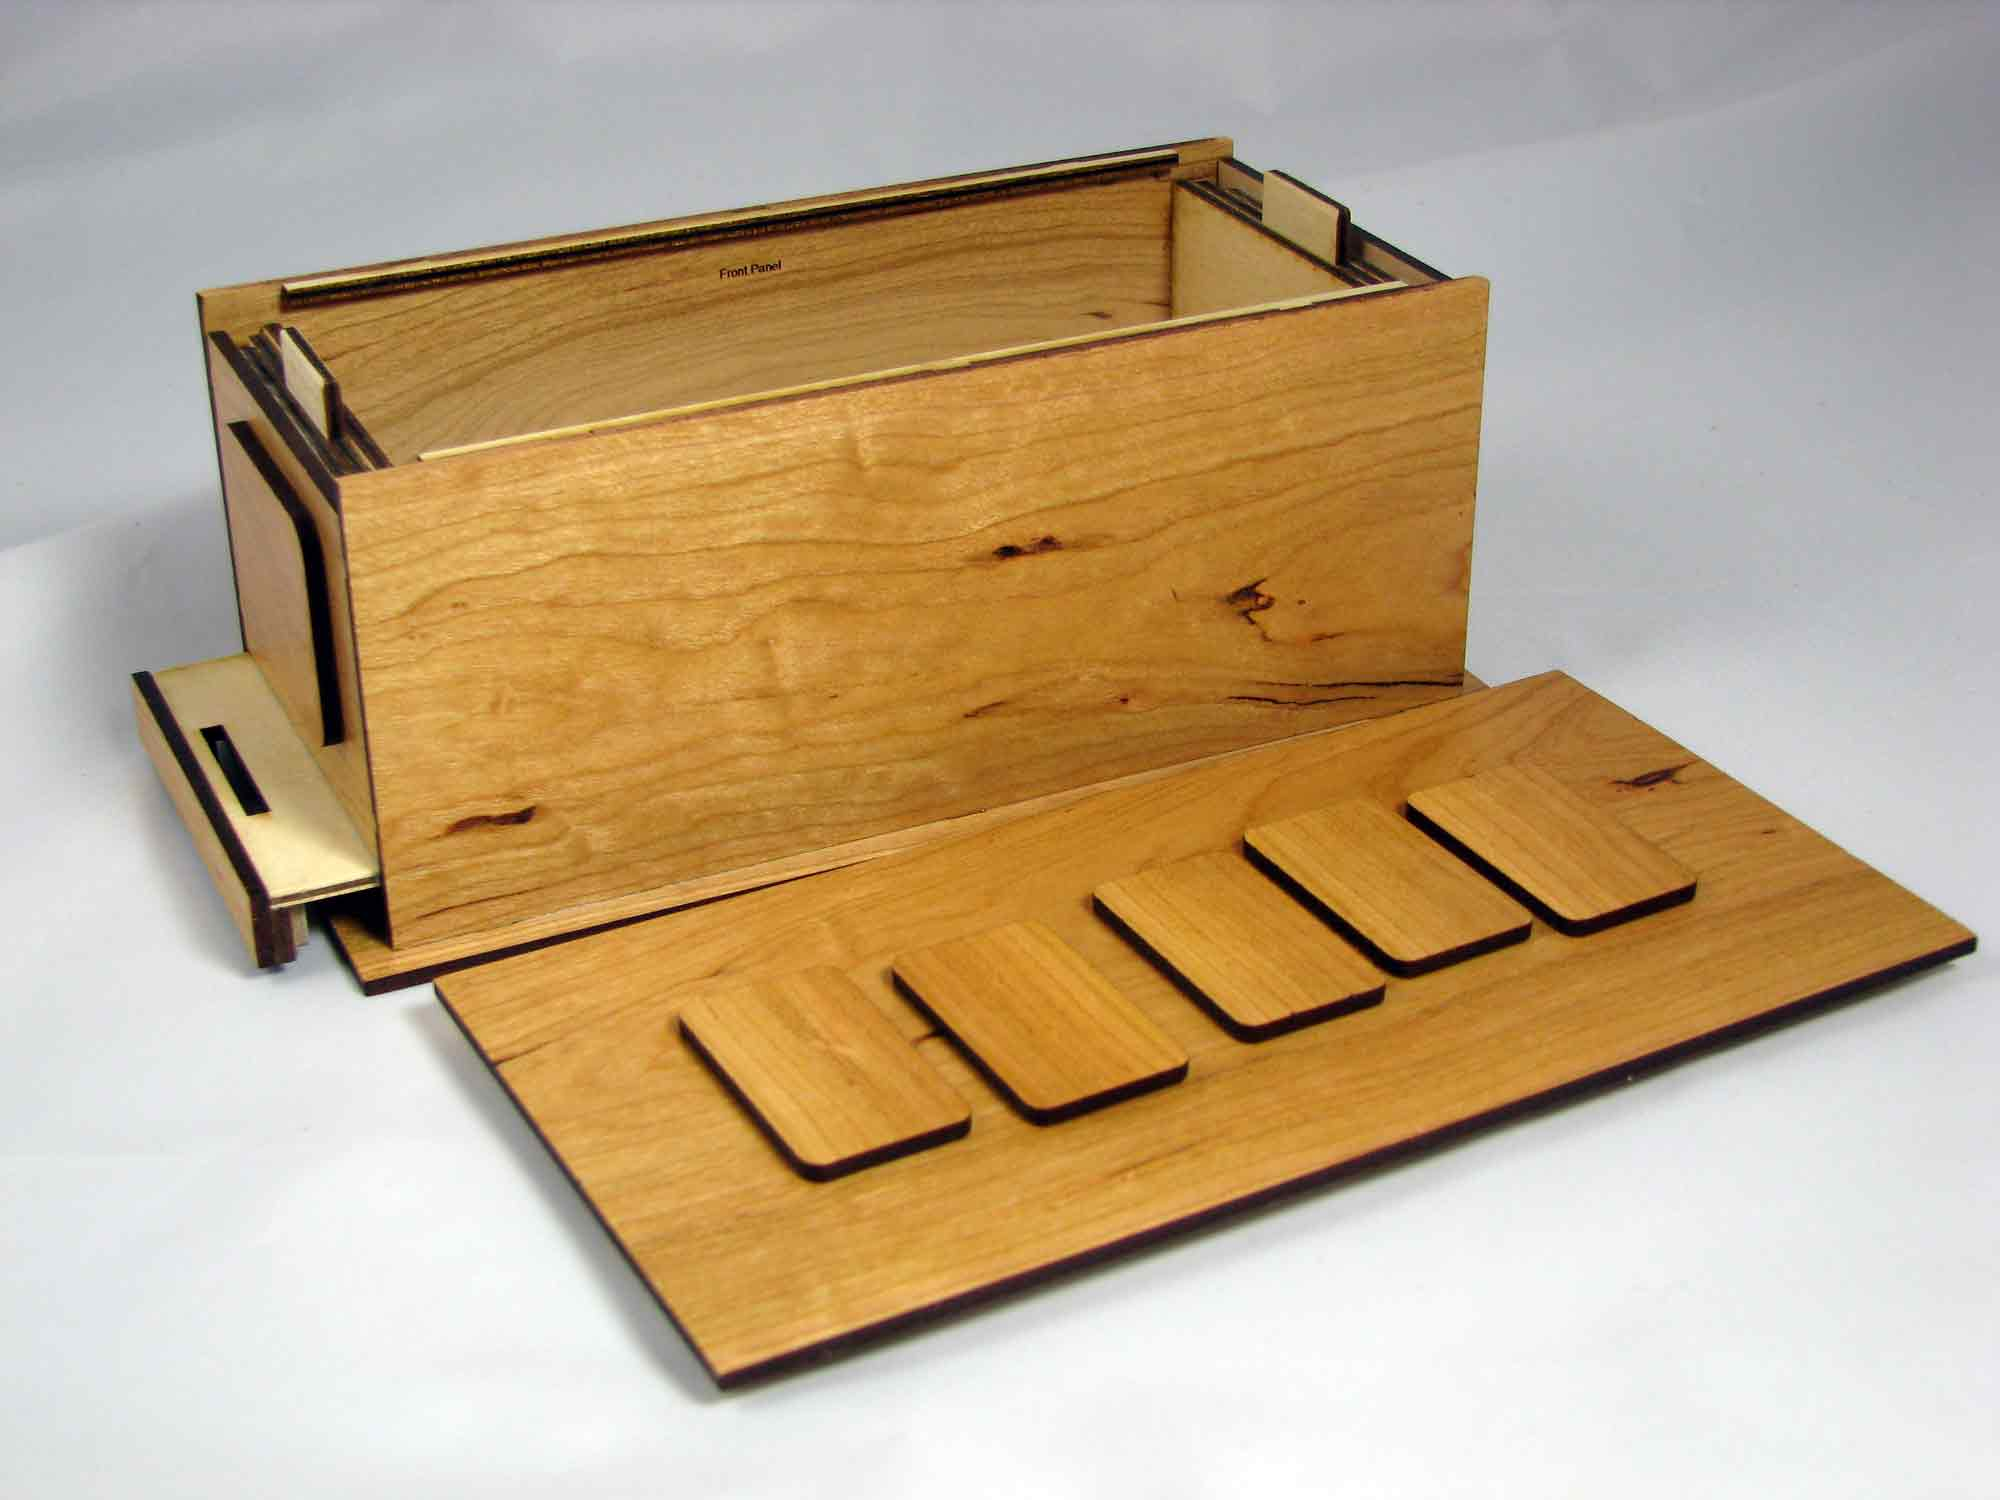 Gallery For > Chinese Puzzle Box Plans